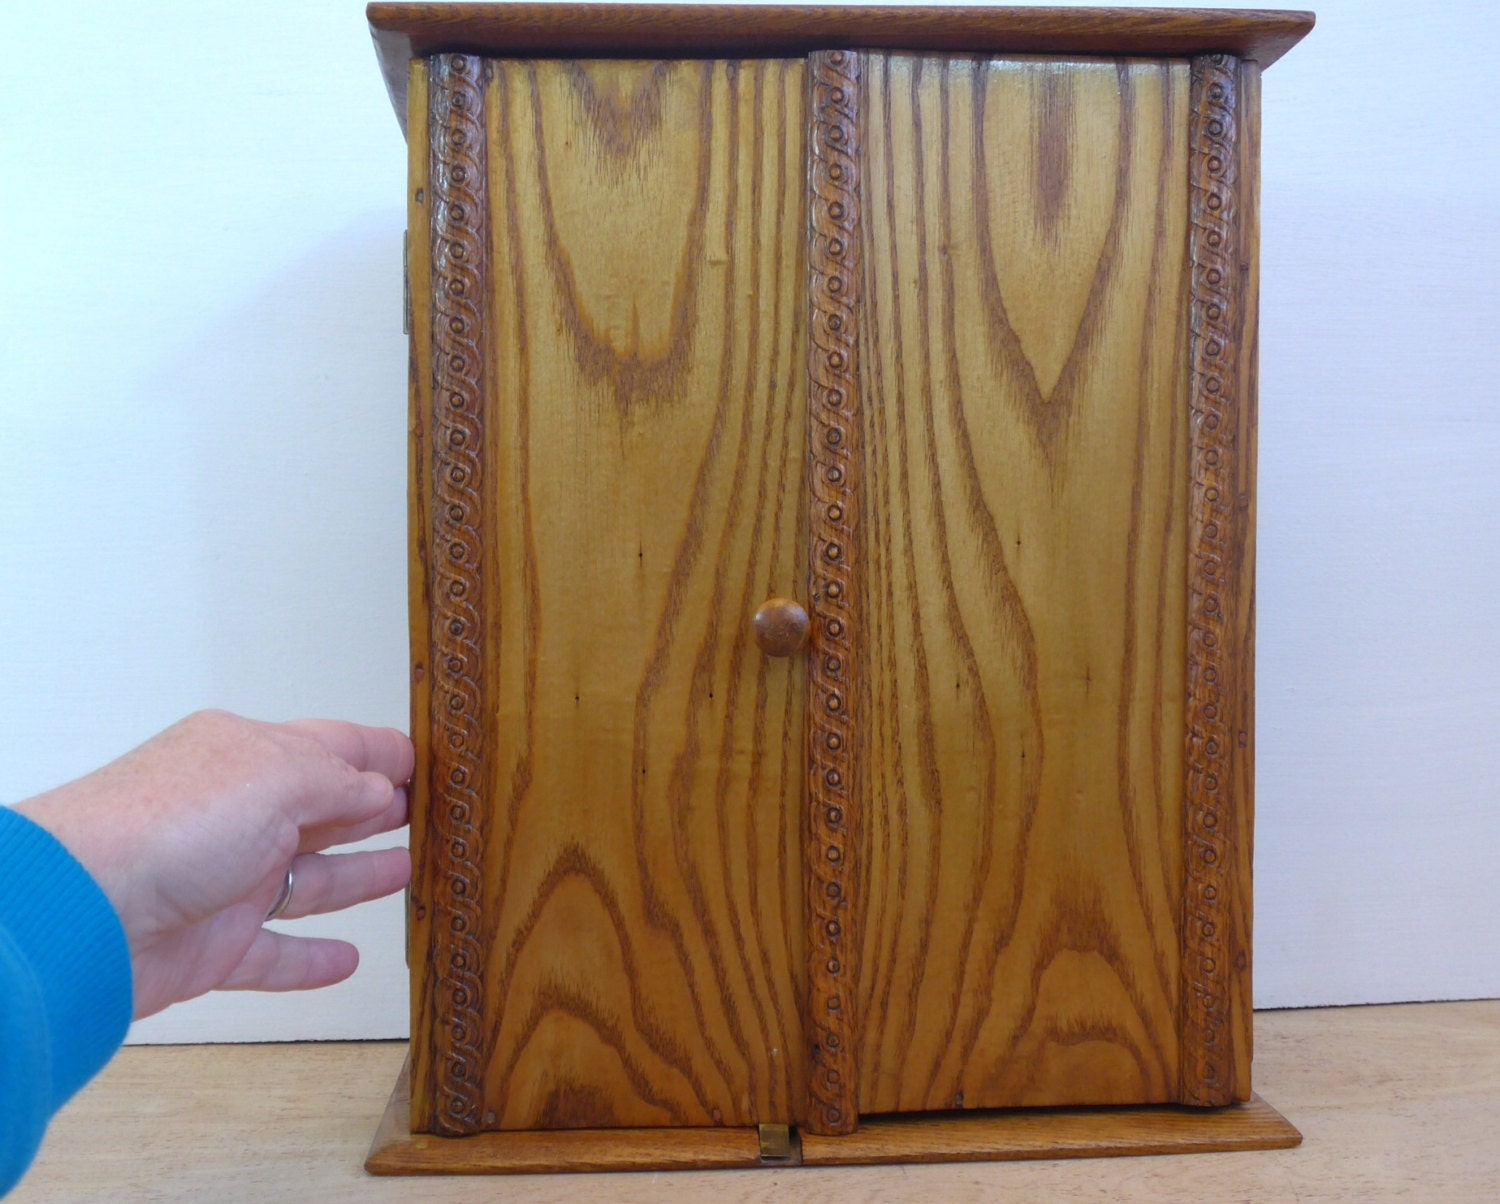 Vintage Tall Oak Wood Mini Cabinet   Wooden Jewelry Closet Dovetailed  Corners Decorative Trim Cottage Chic   Shabby Shic Wood Jewelry Box